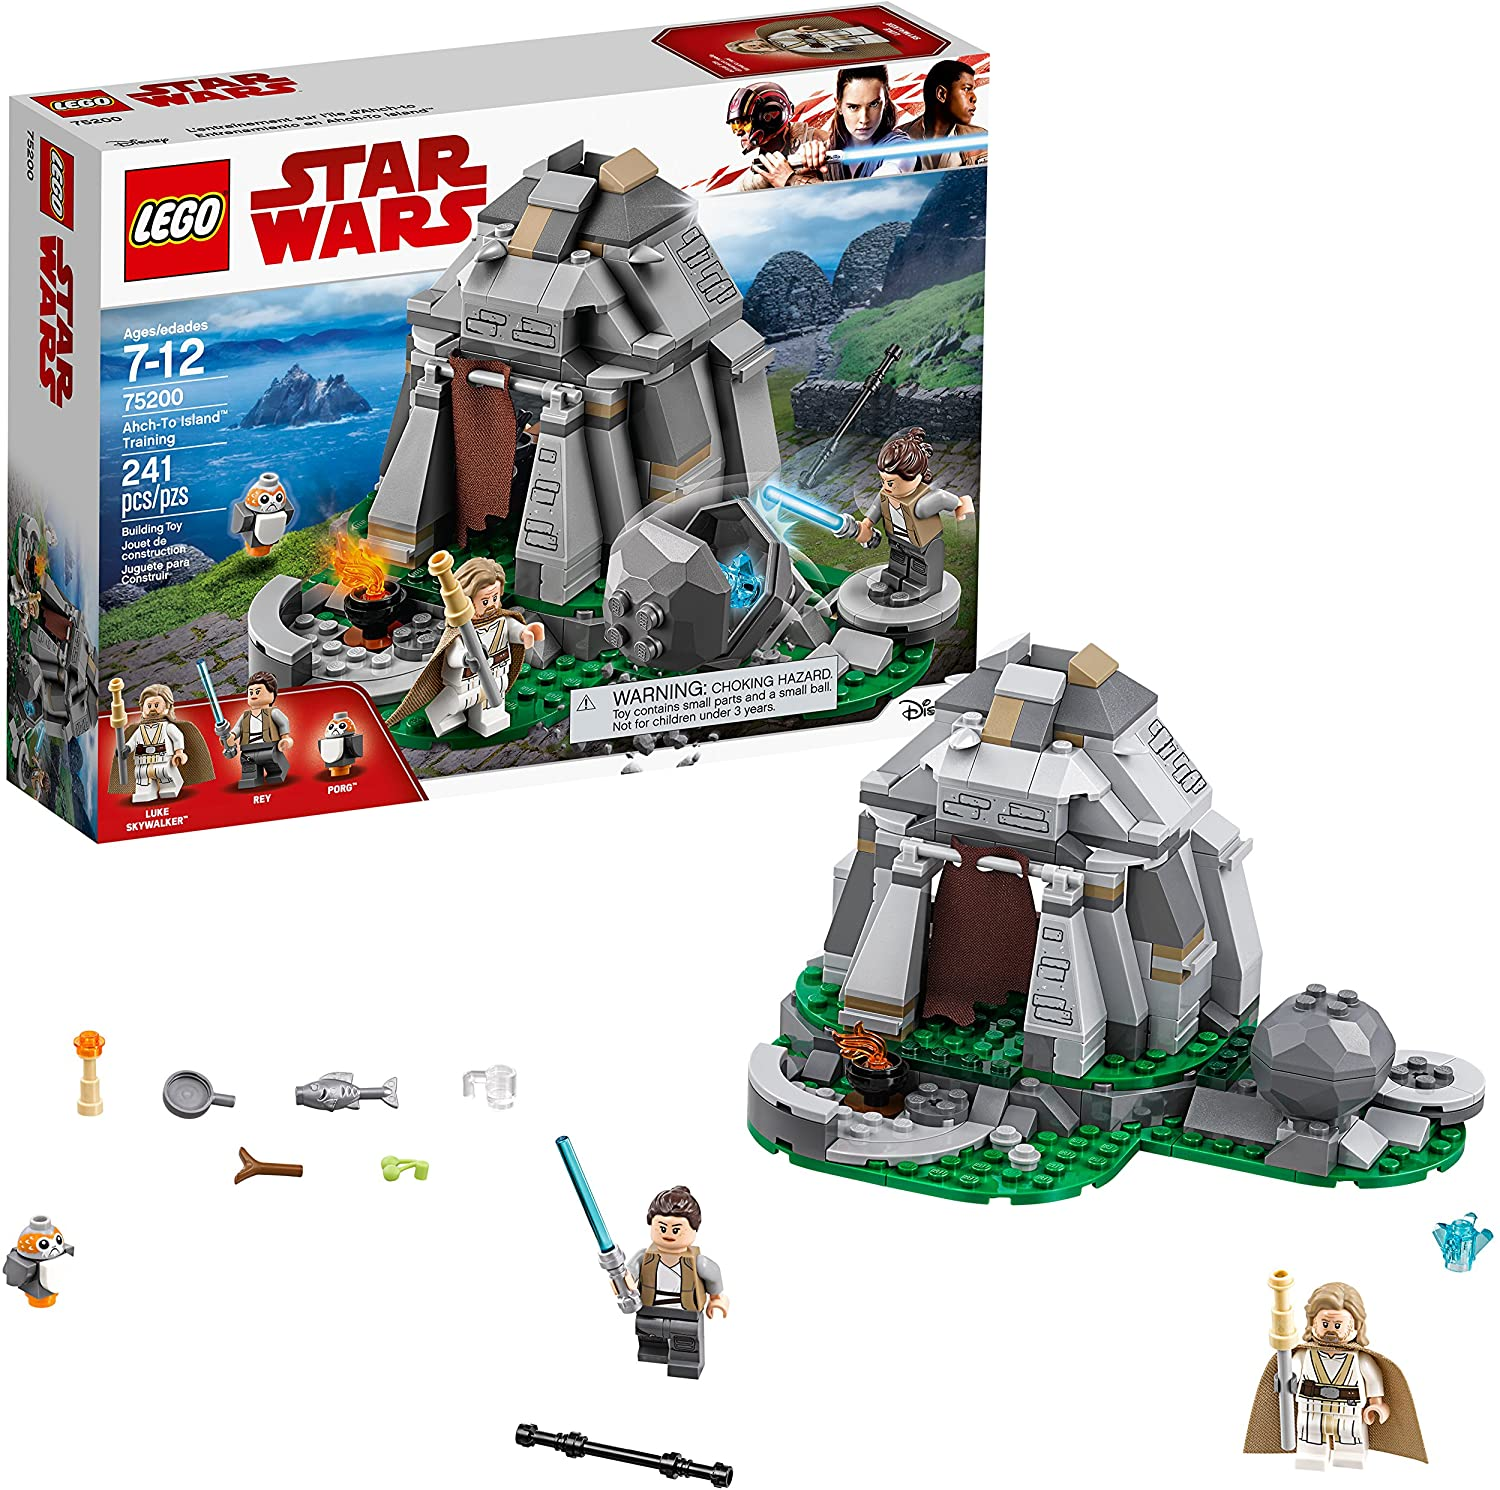 Amazon Com Lego Star Wars The Last Jedi Ahch To Island Training 75200 Building Kit 241 Pieces Toys Games